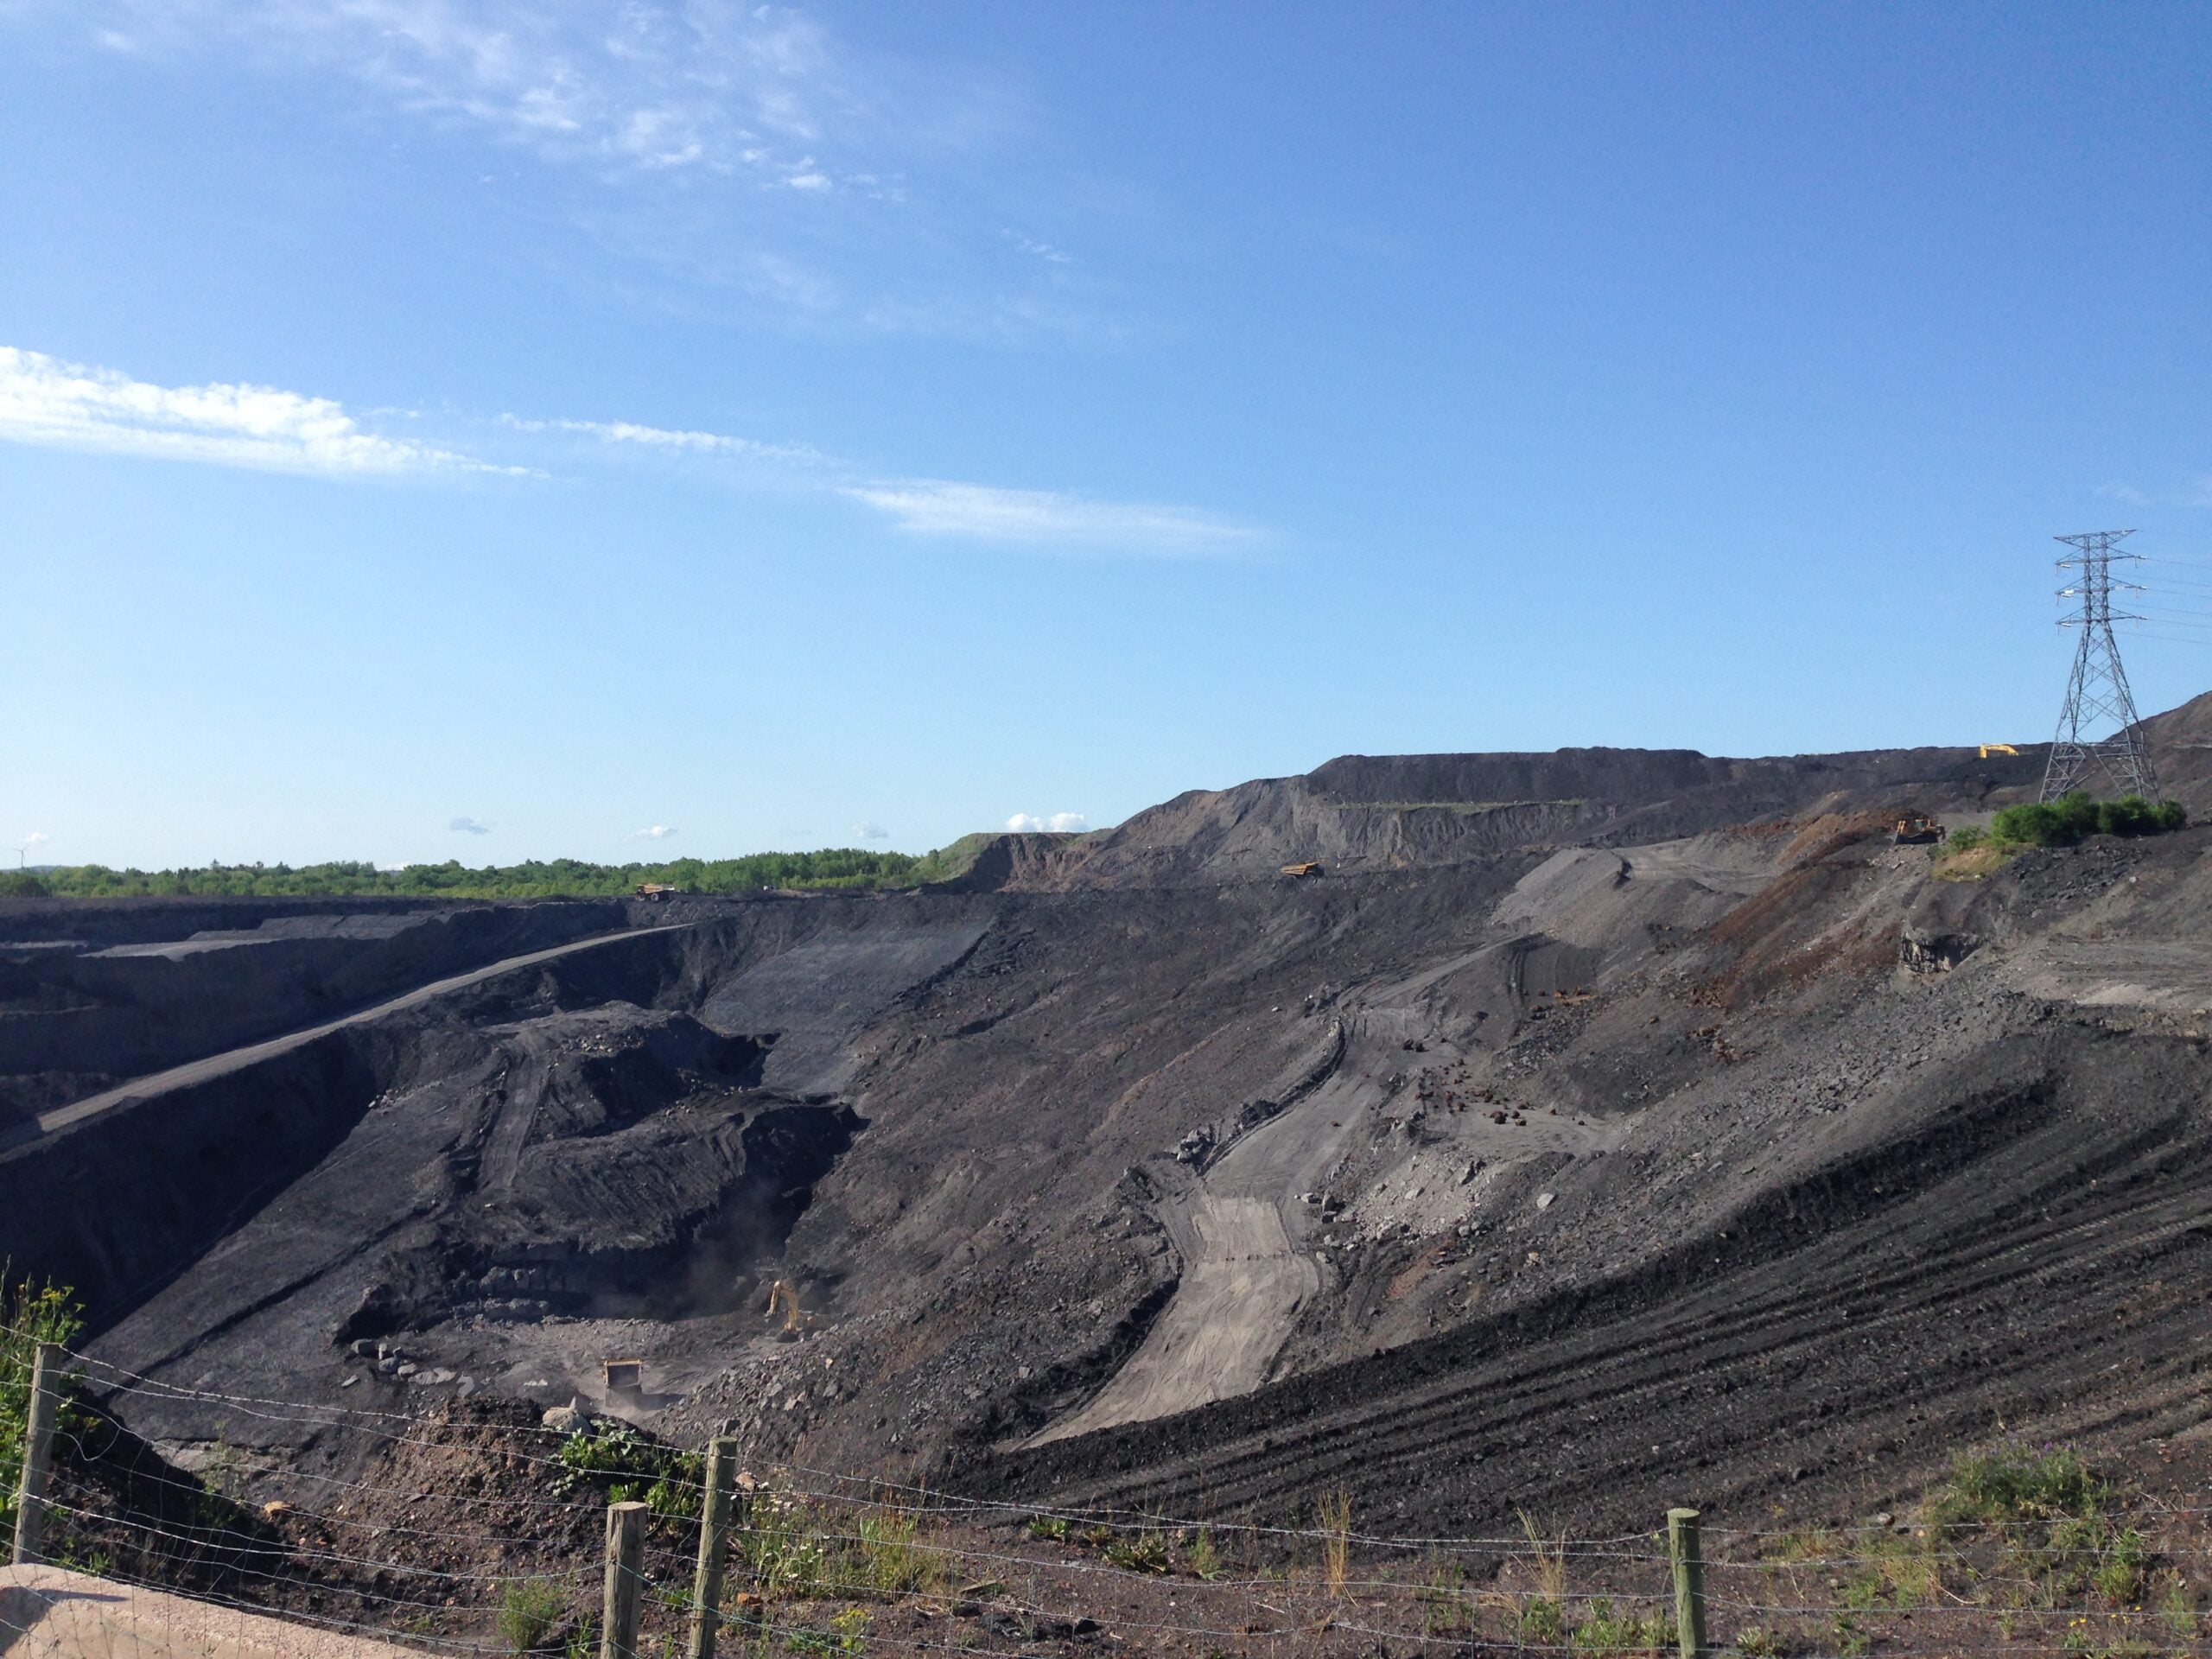 Obama Administration Stops New Coal Mining Leases On Federal Land